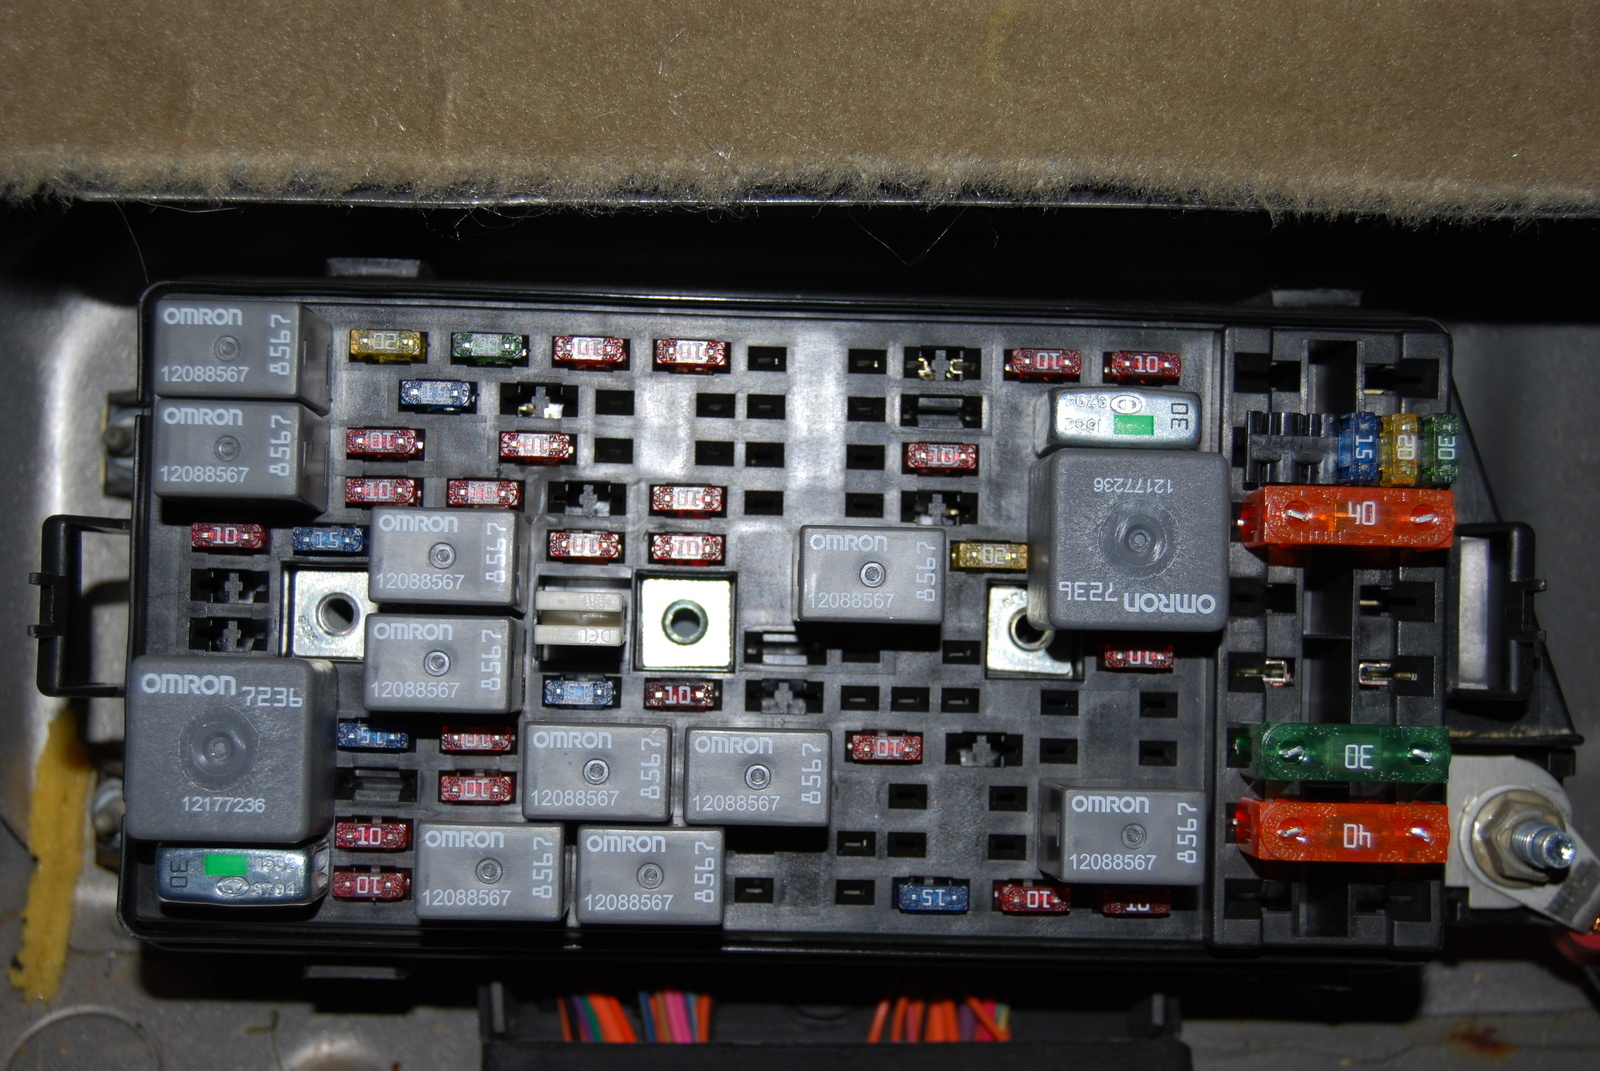 2006 Cadillac Dts Fuse Box Diagram Catera Location Wiring Library 2000 Buick Lesabre Simple Rh David Huggett Co Uk 1997 Deville